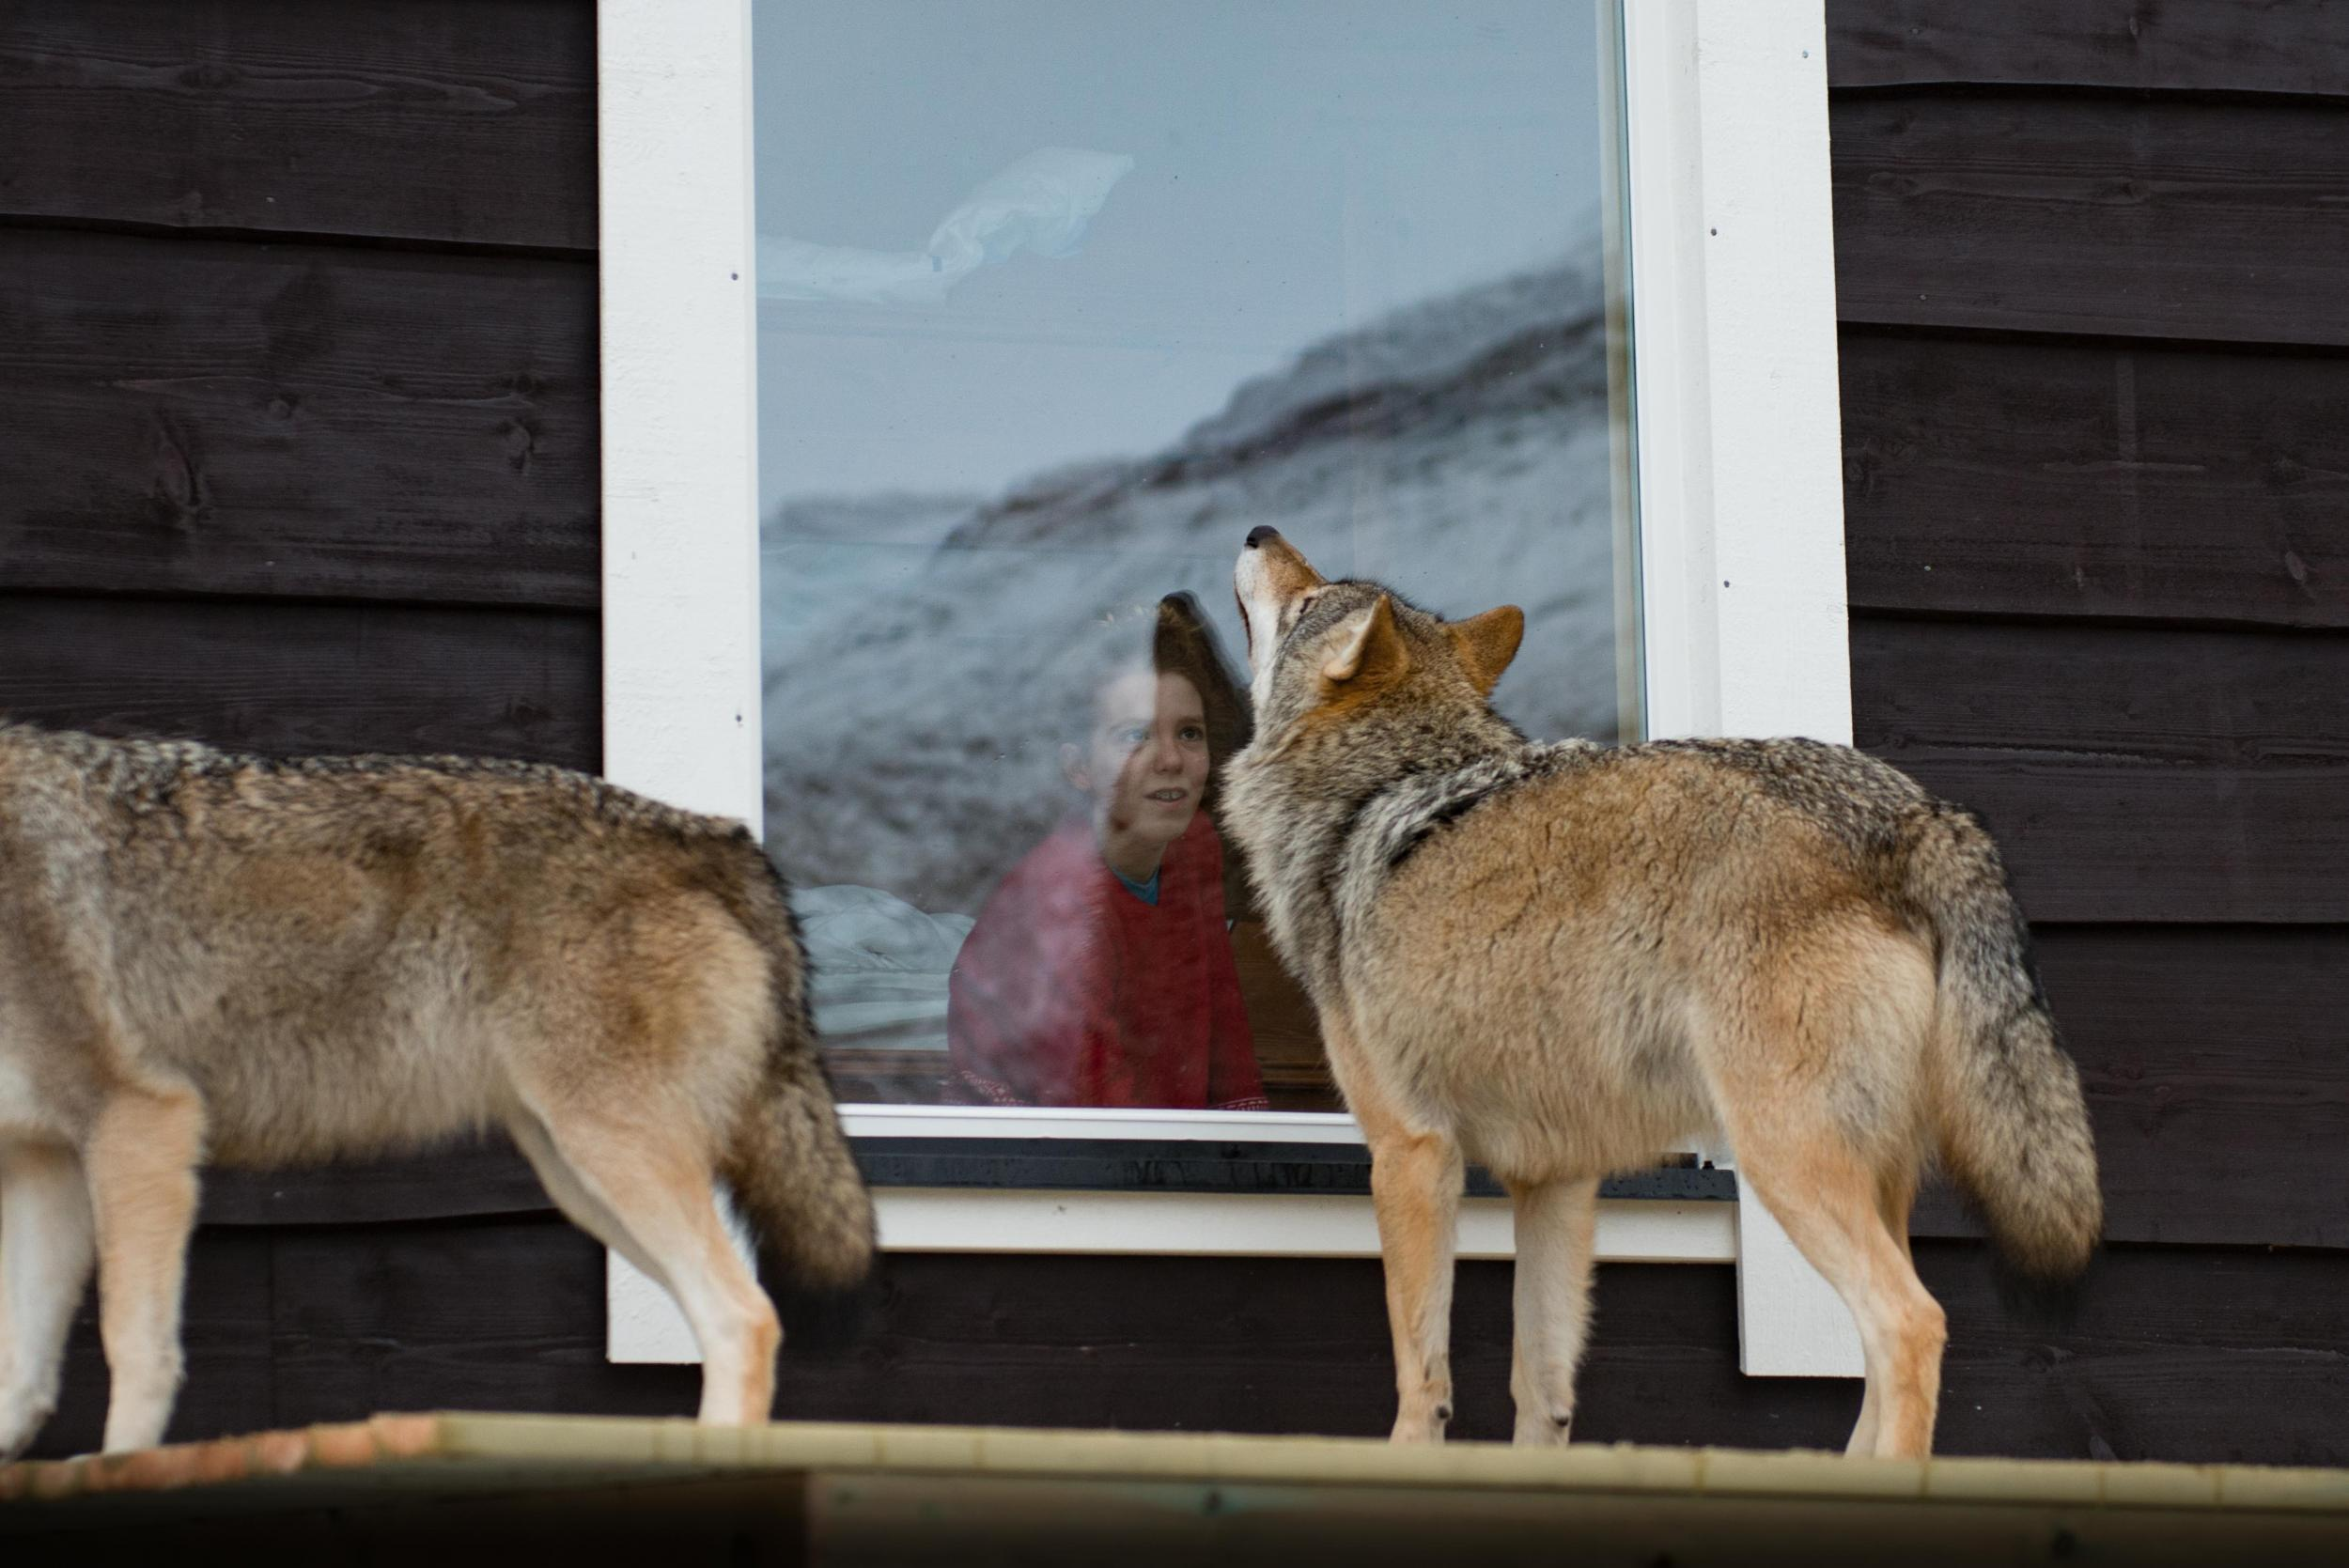 Whale watching and wolves at your window: Wild adventures in Norway's far north